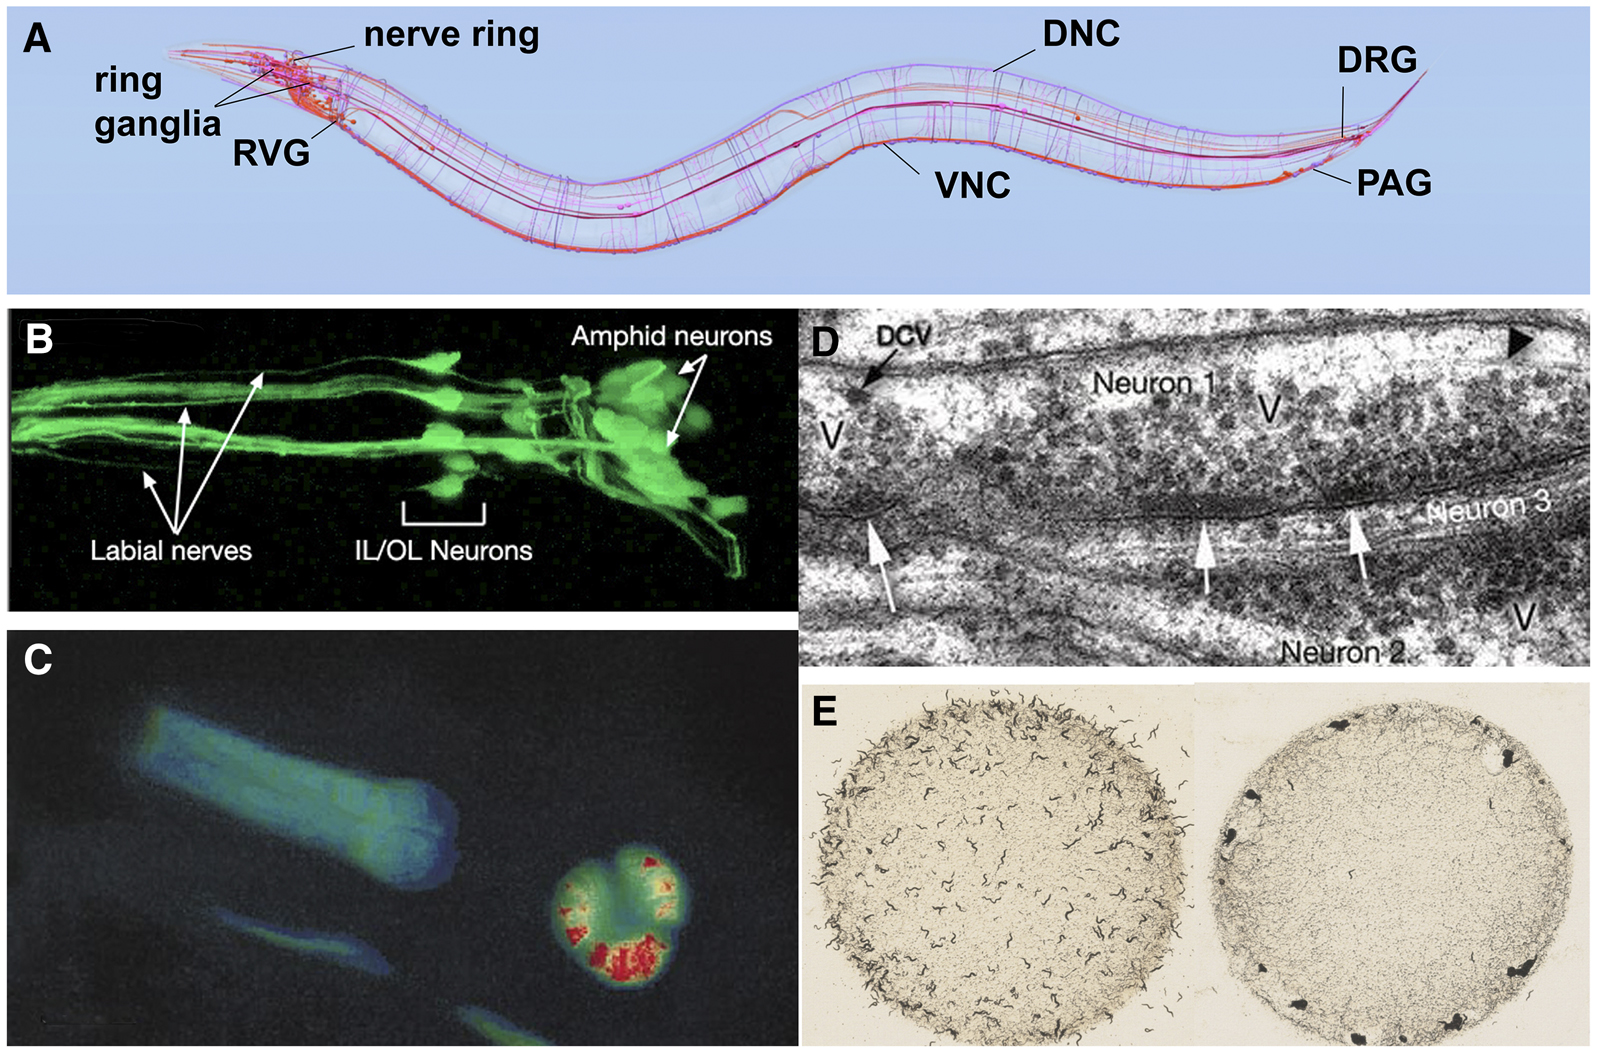 A Transparent Window Into Biology Primer On Caenorhabditis Elegans There Are Several Advantages Of Using Ring Circuit Figure 4 Anatomy And Study The C Nervous System Diagram Identifying Some Major Nerve Bundles Ganglia